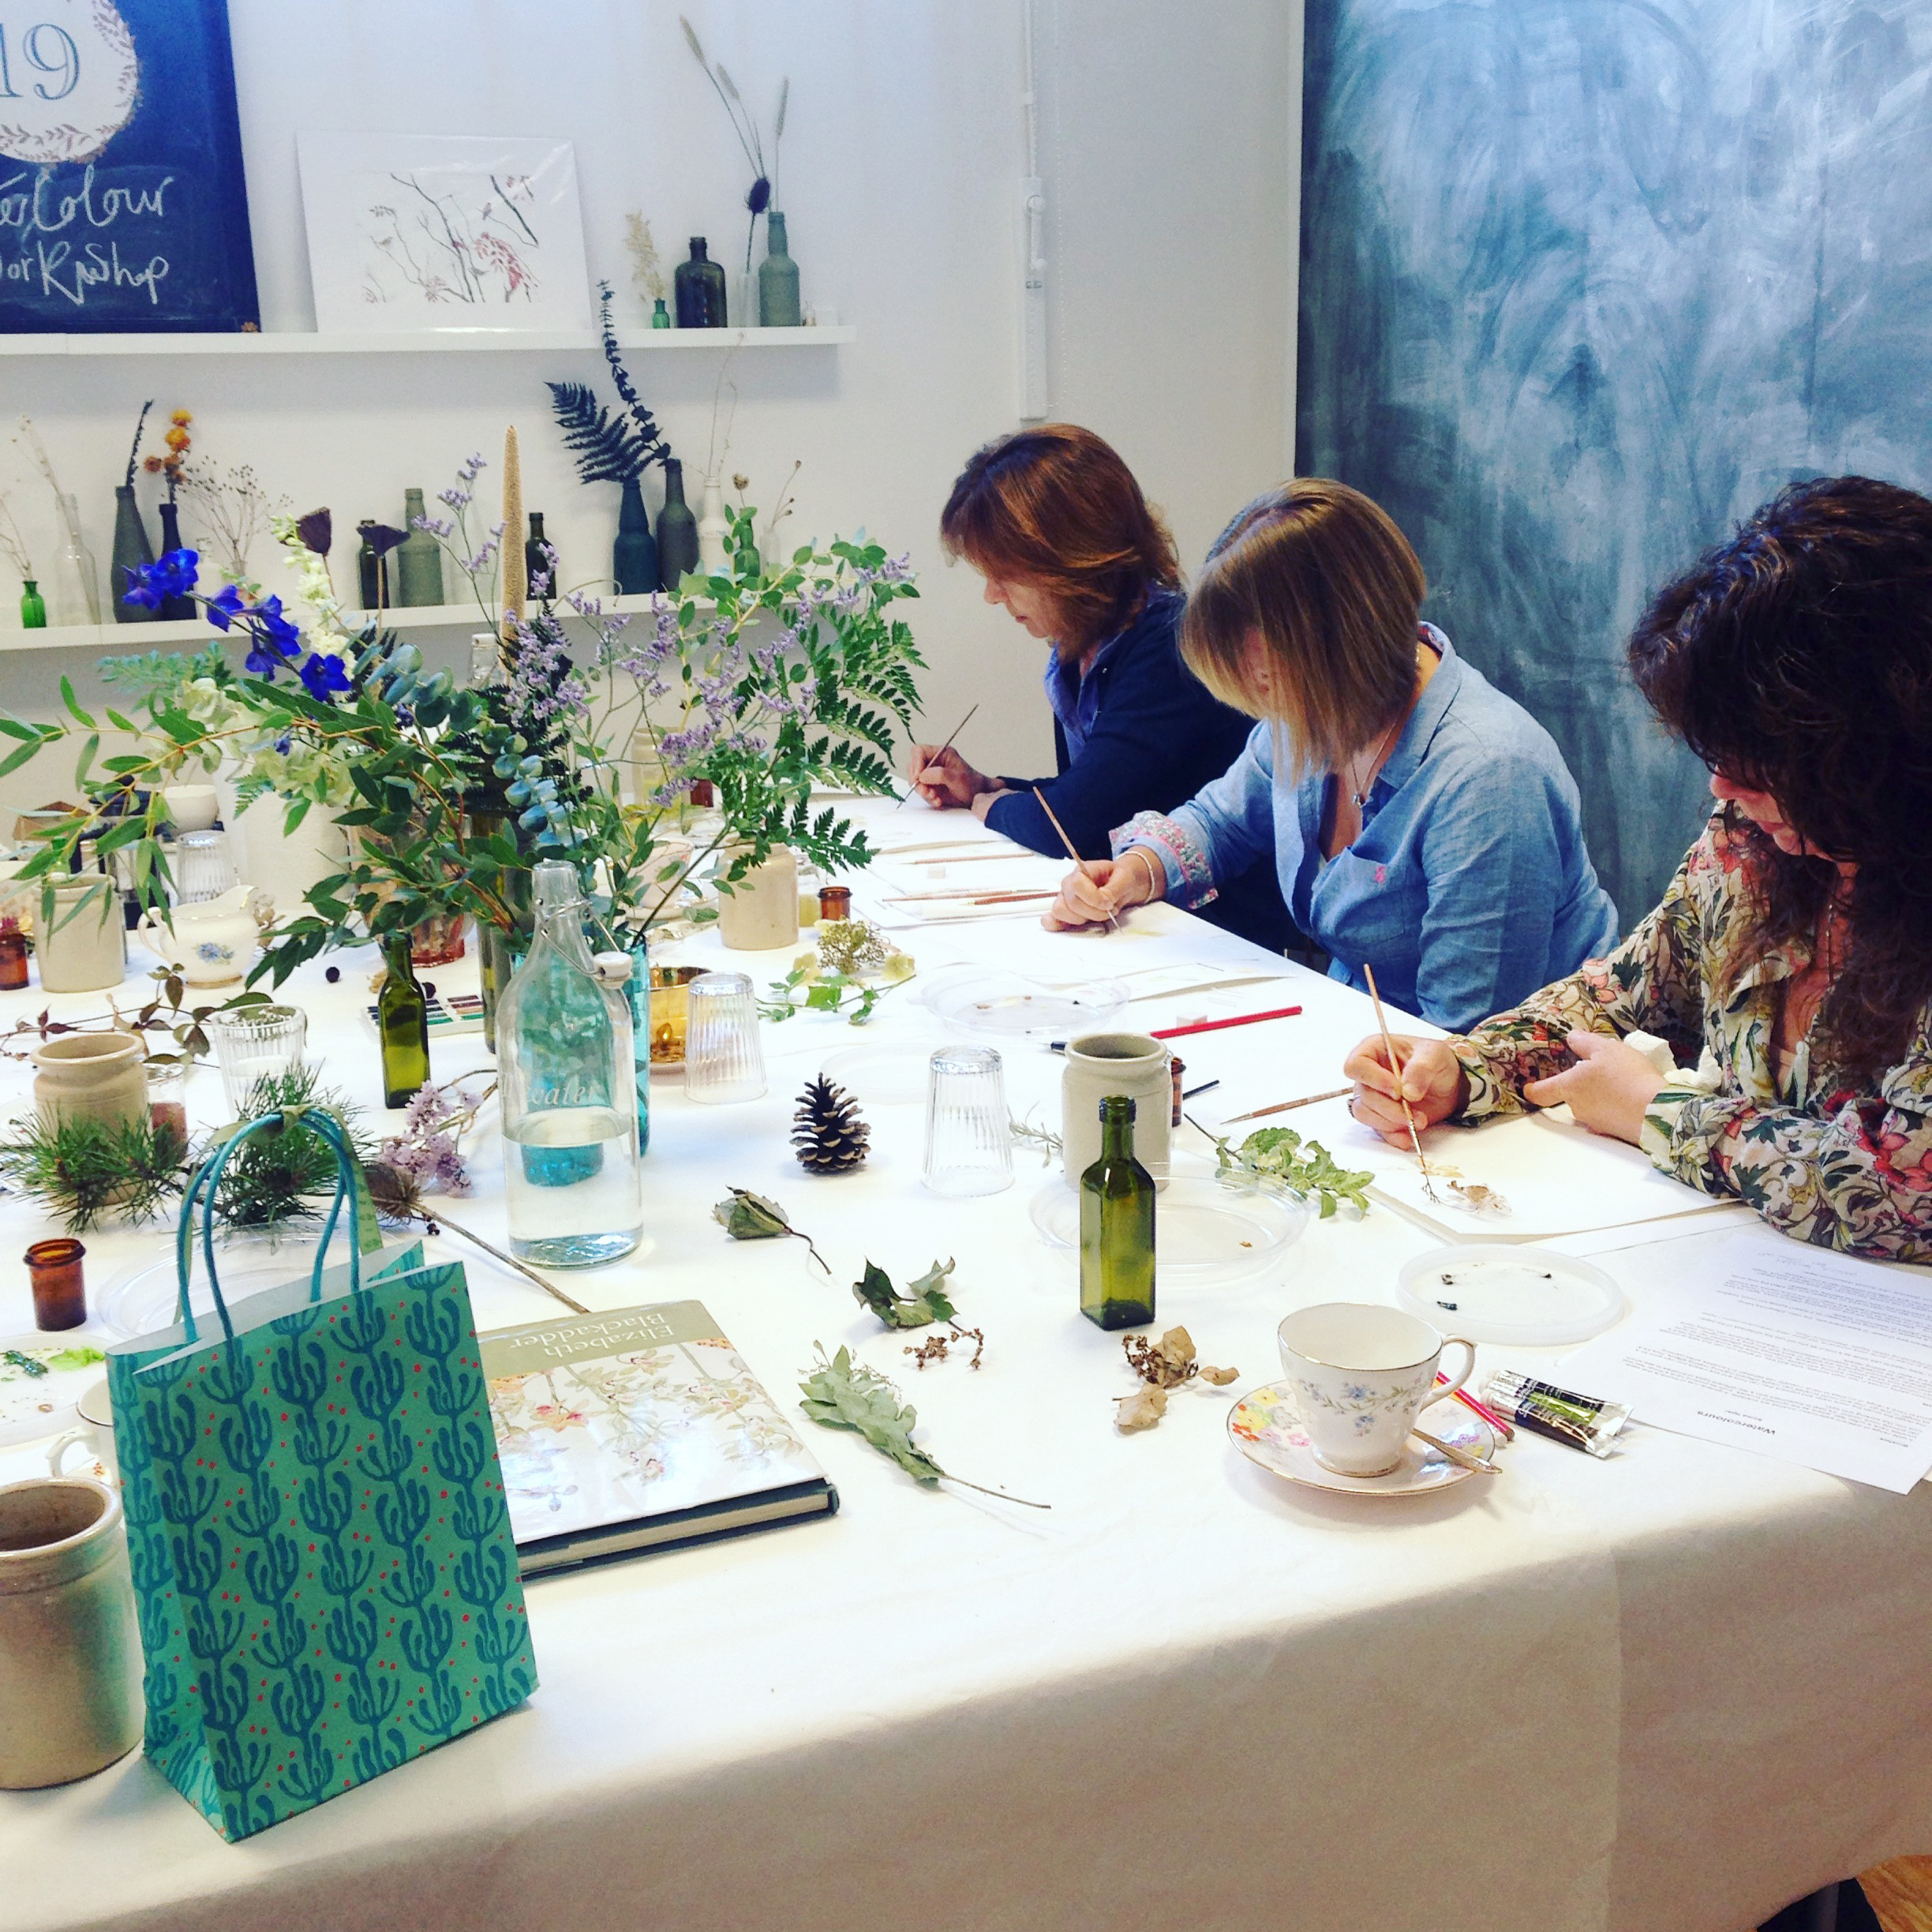 Botanical watercolour workshop. Photo by Lindsay McDonagh